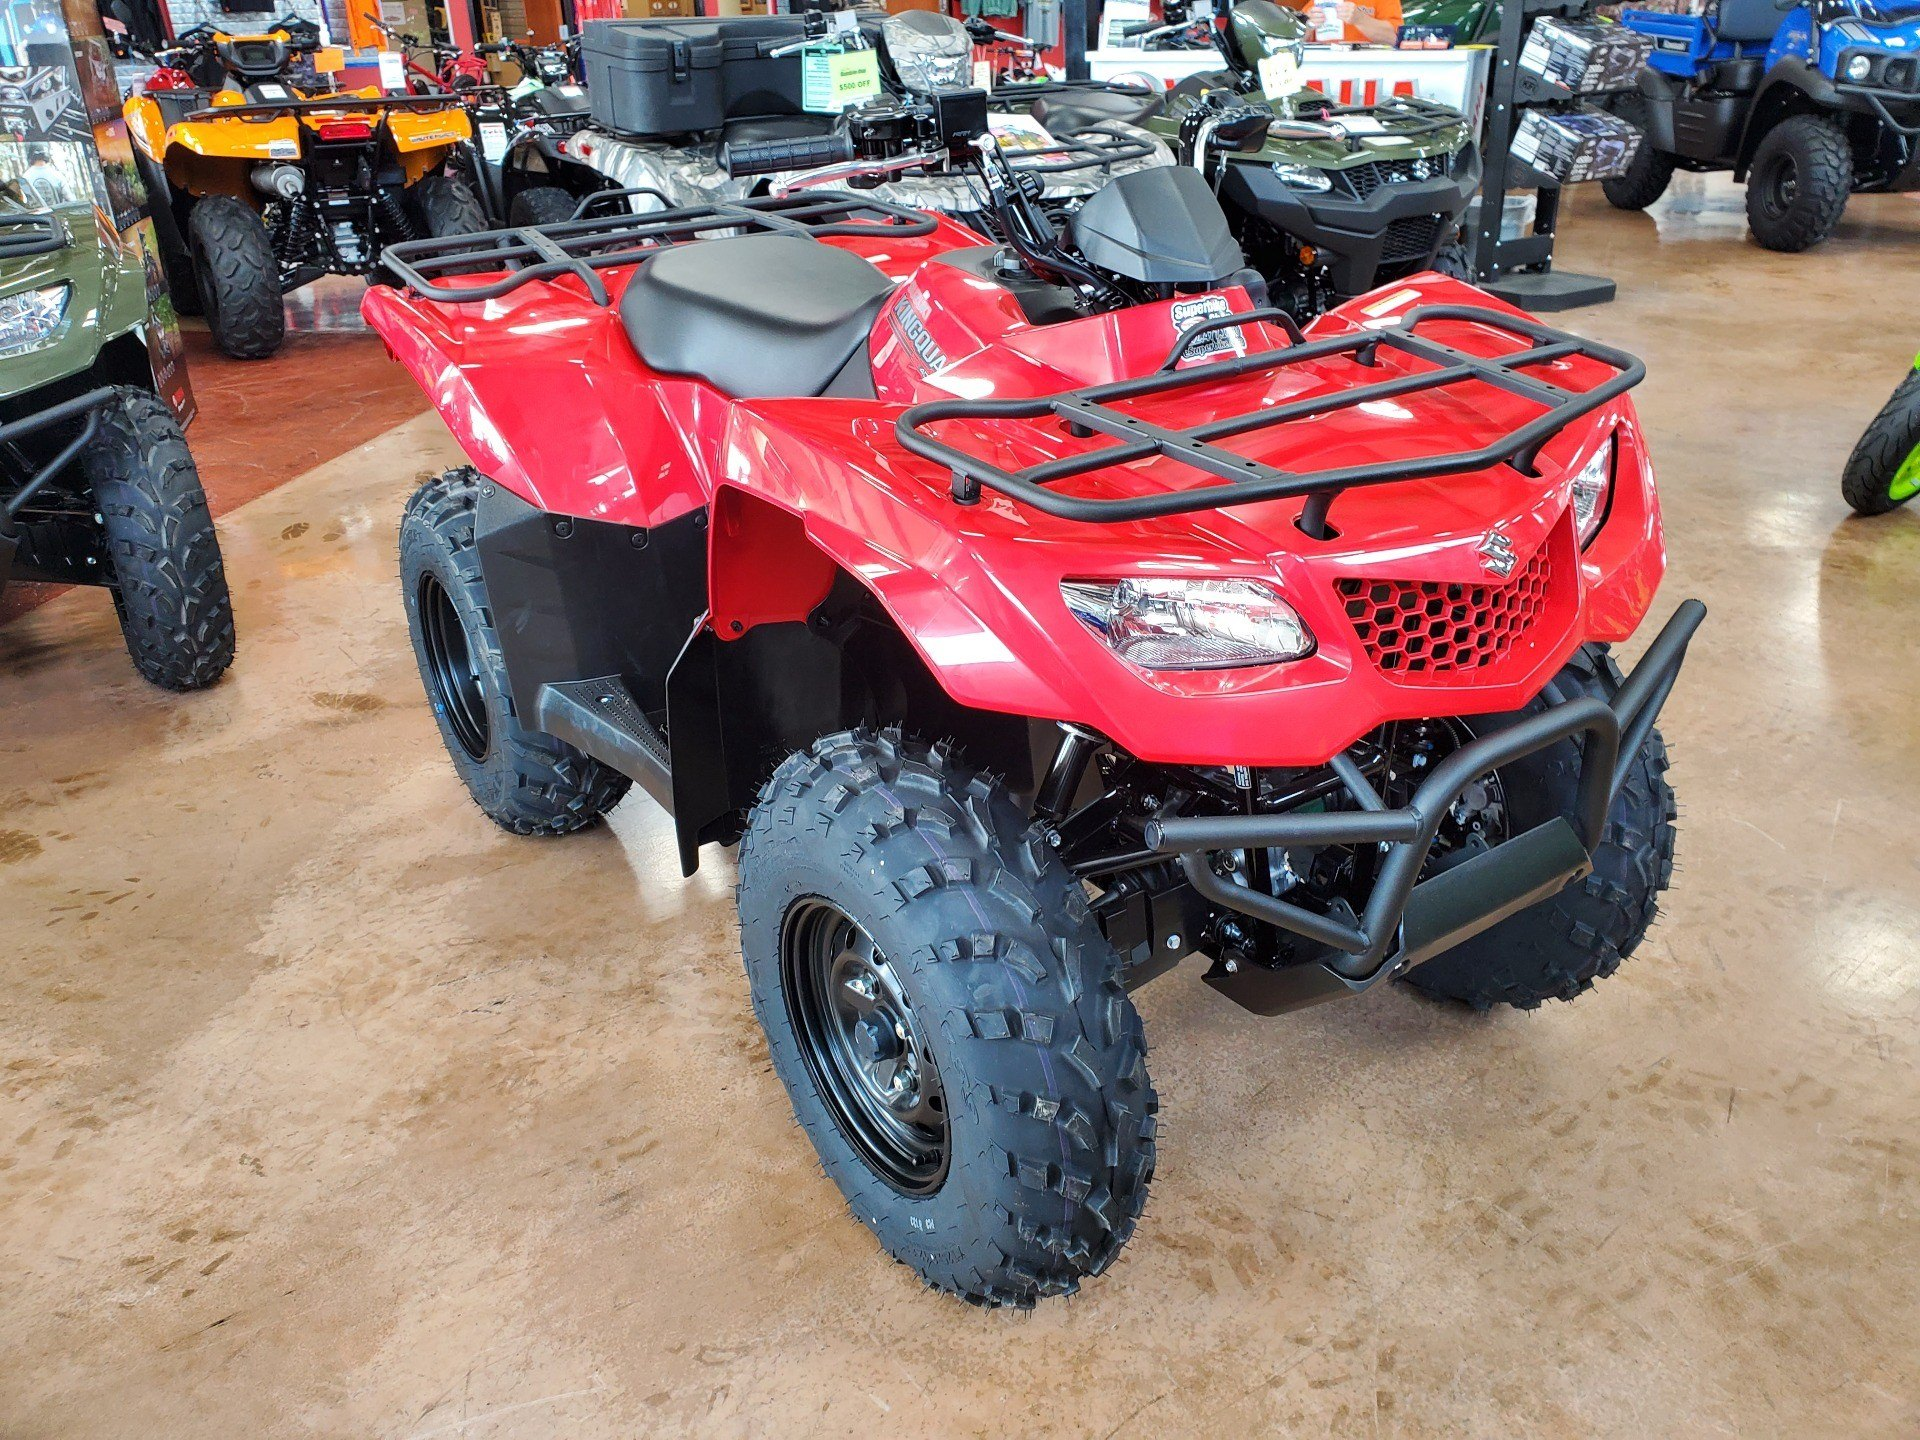 2020 Suzuki KingQuad 400ASi in Evansville, Indiana - Photo 2